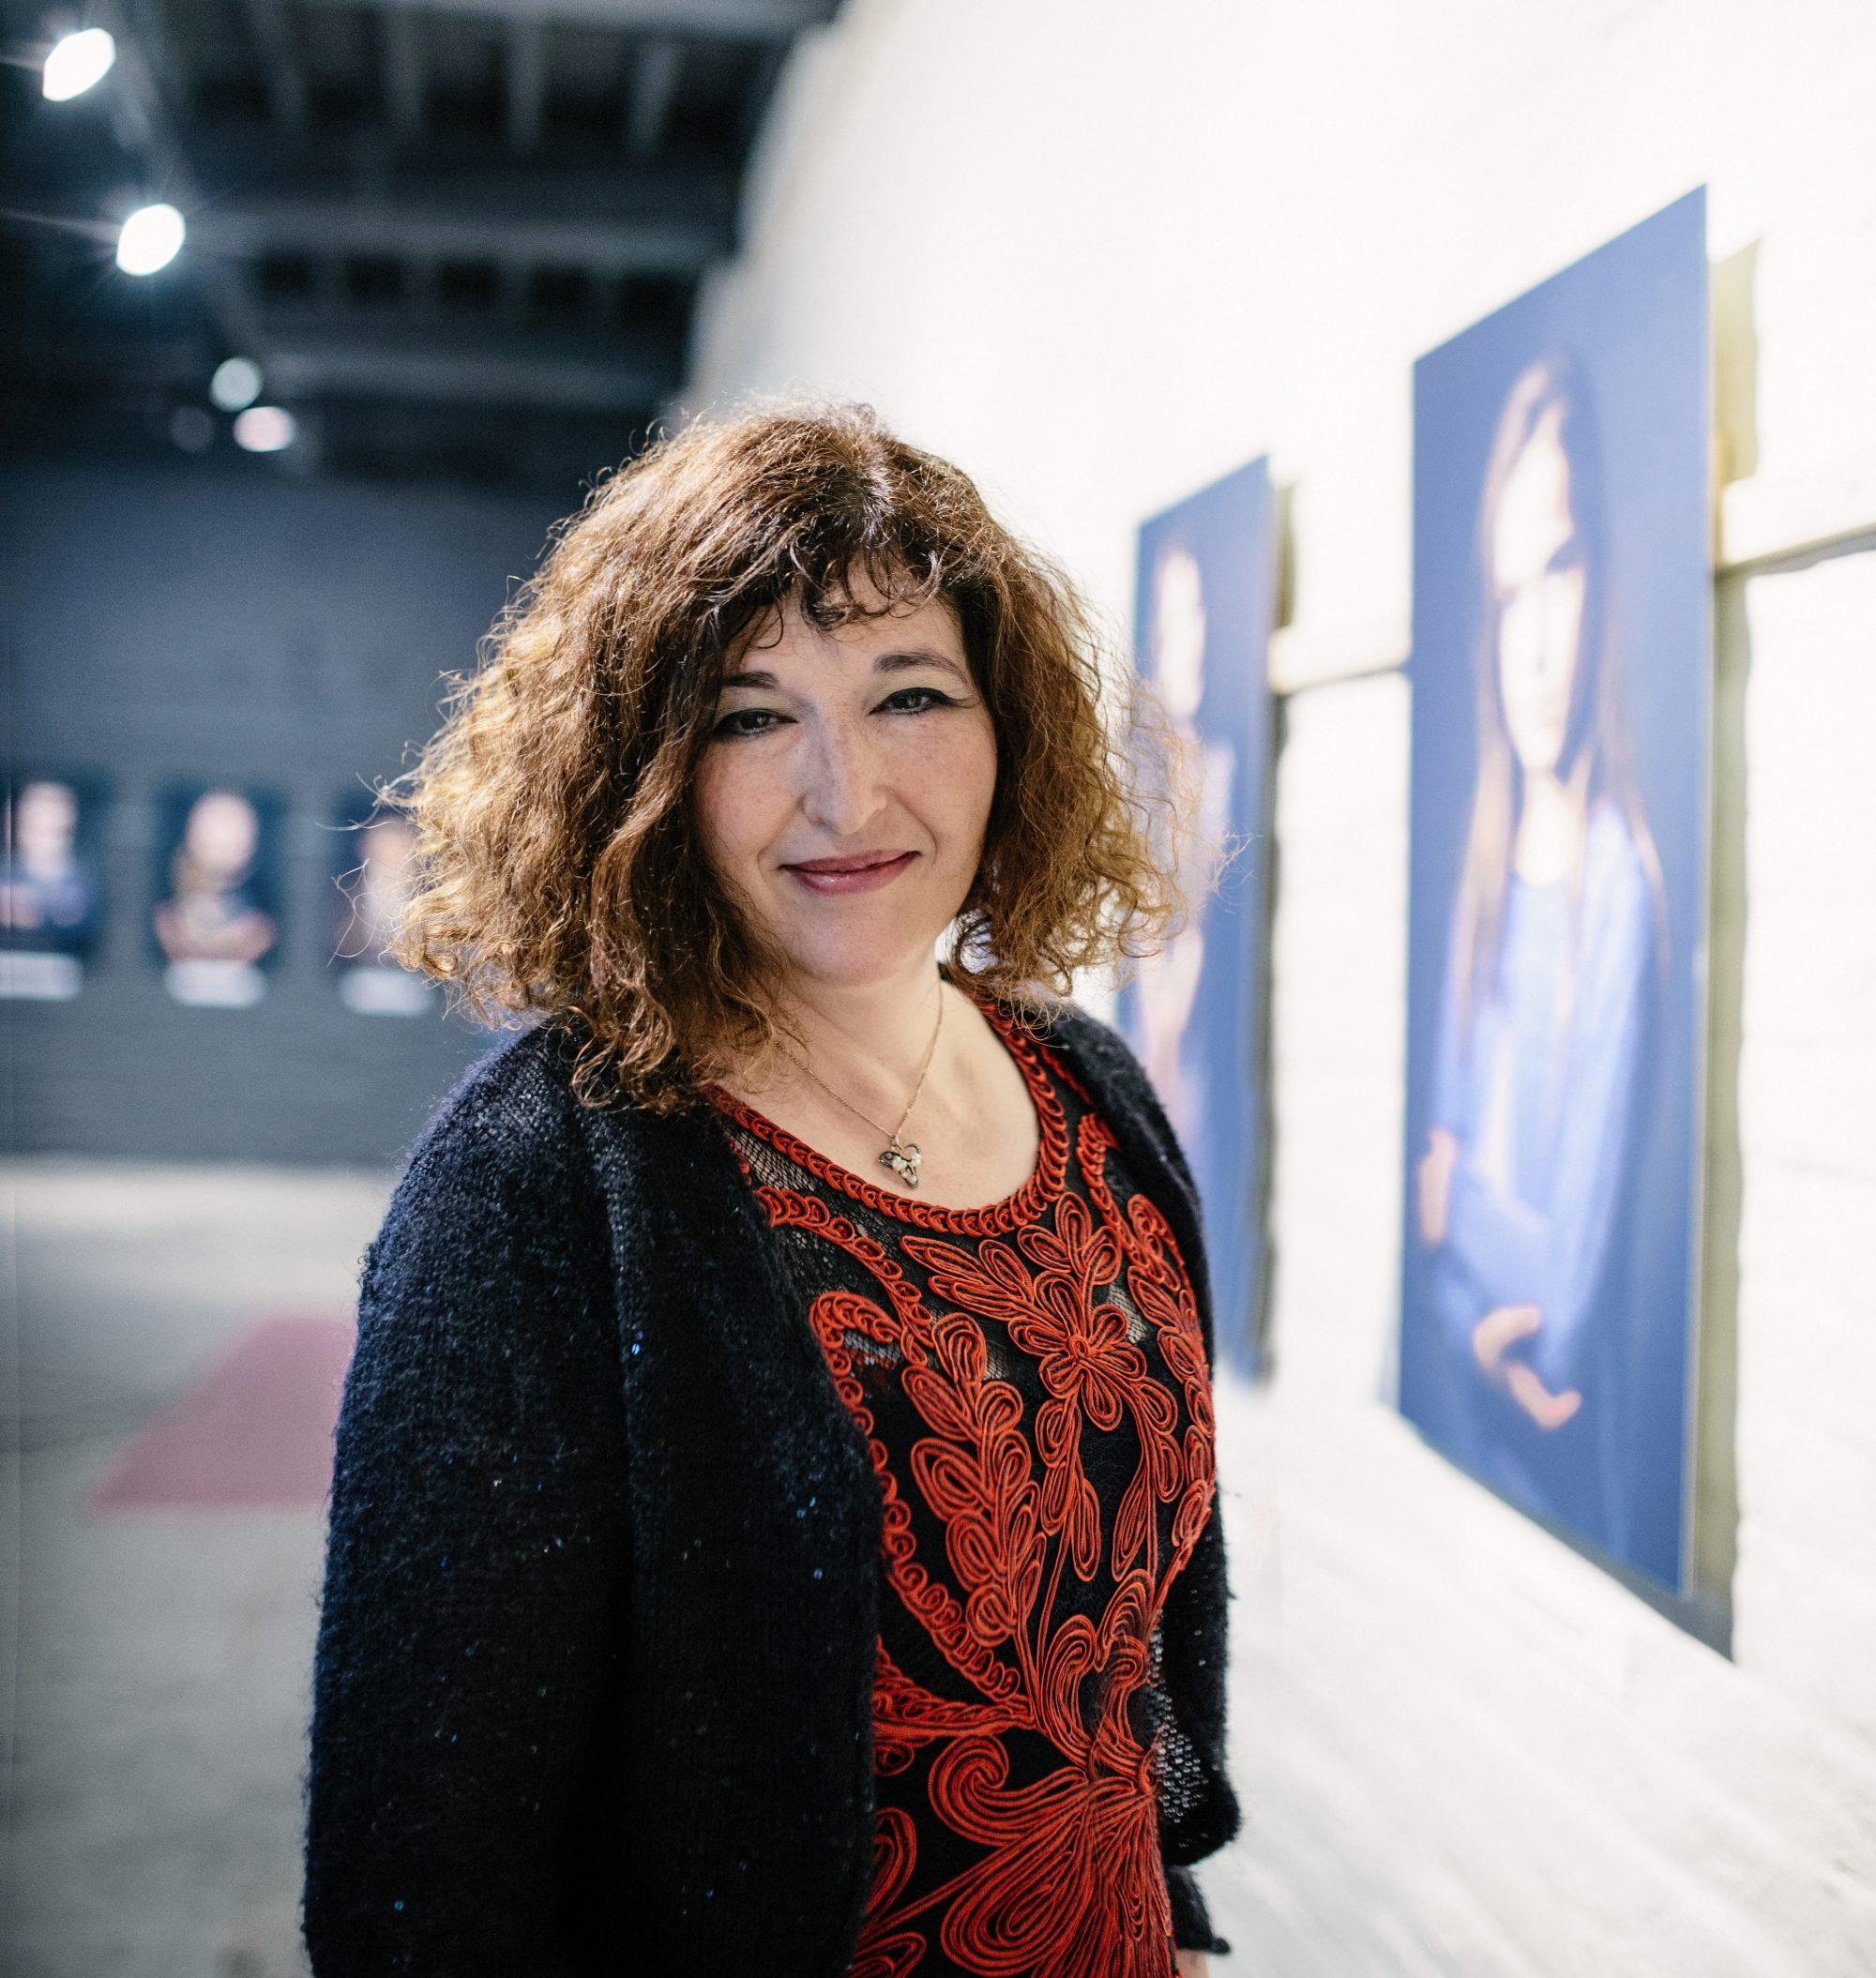 Tilt/Shift: How to get your work seen, practical advice from Carolyn Mendelsohn — Impressions Gallery